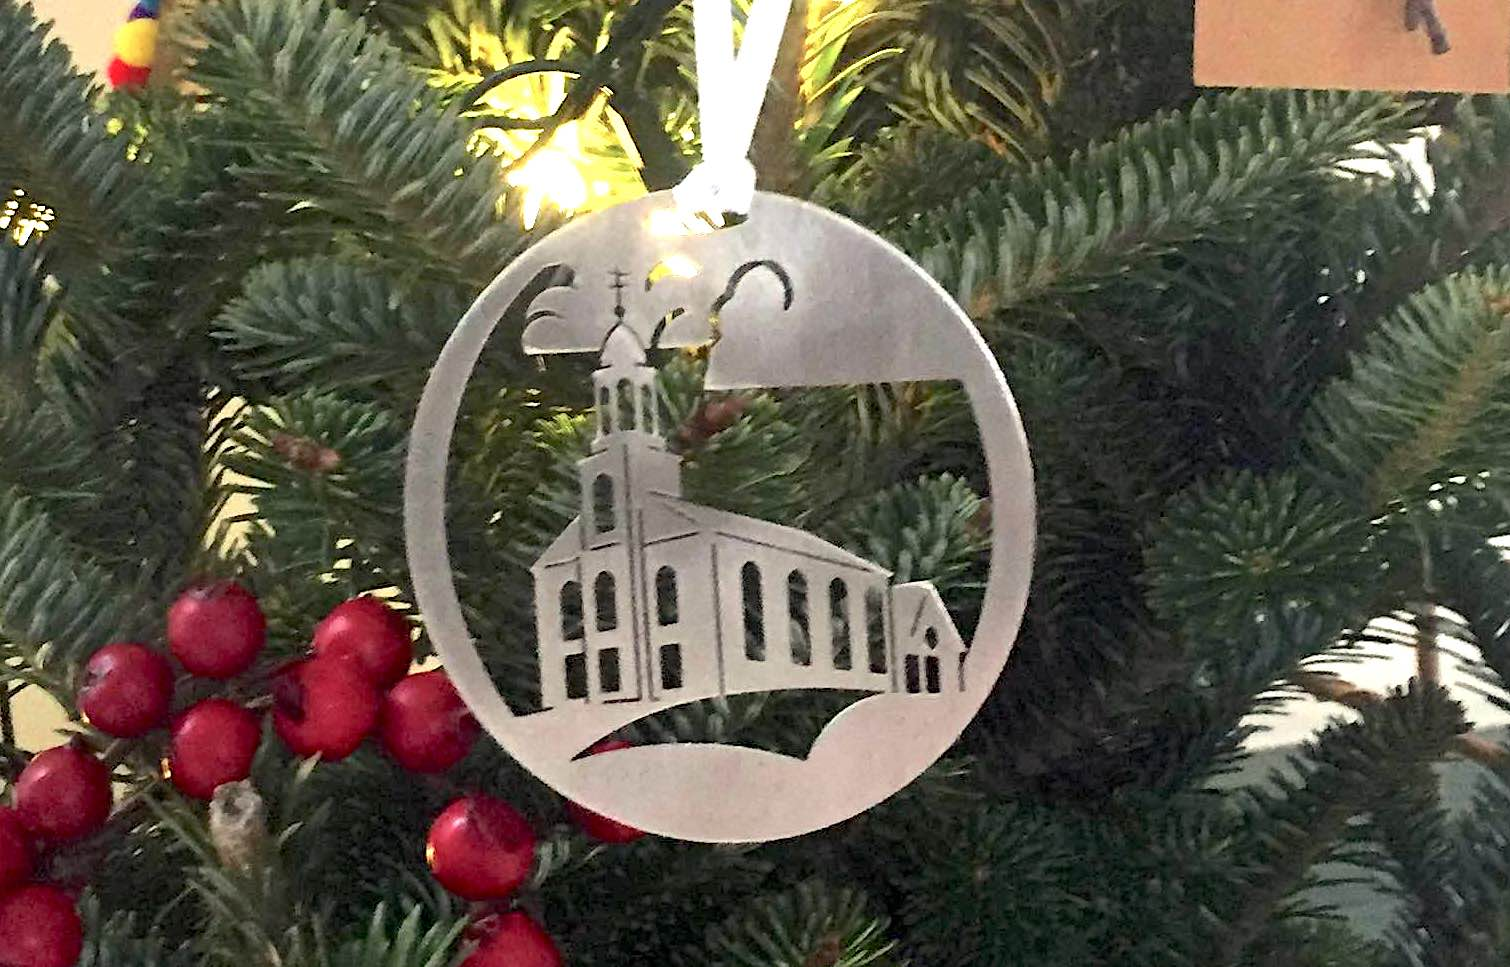 Christmas ornaments are decorations usually made of glass metal